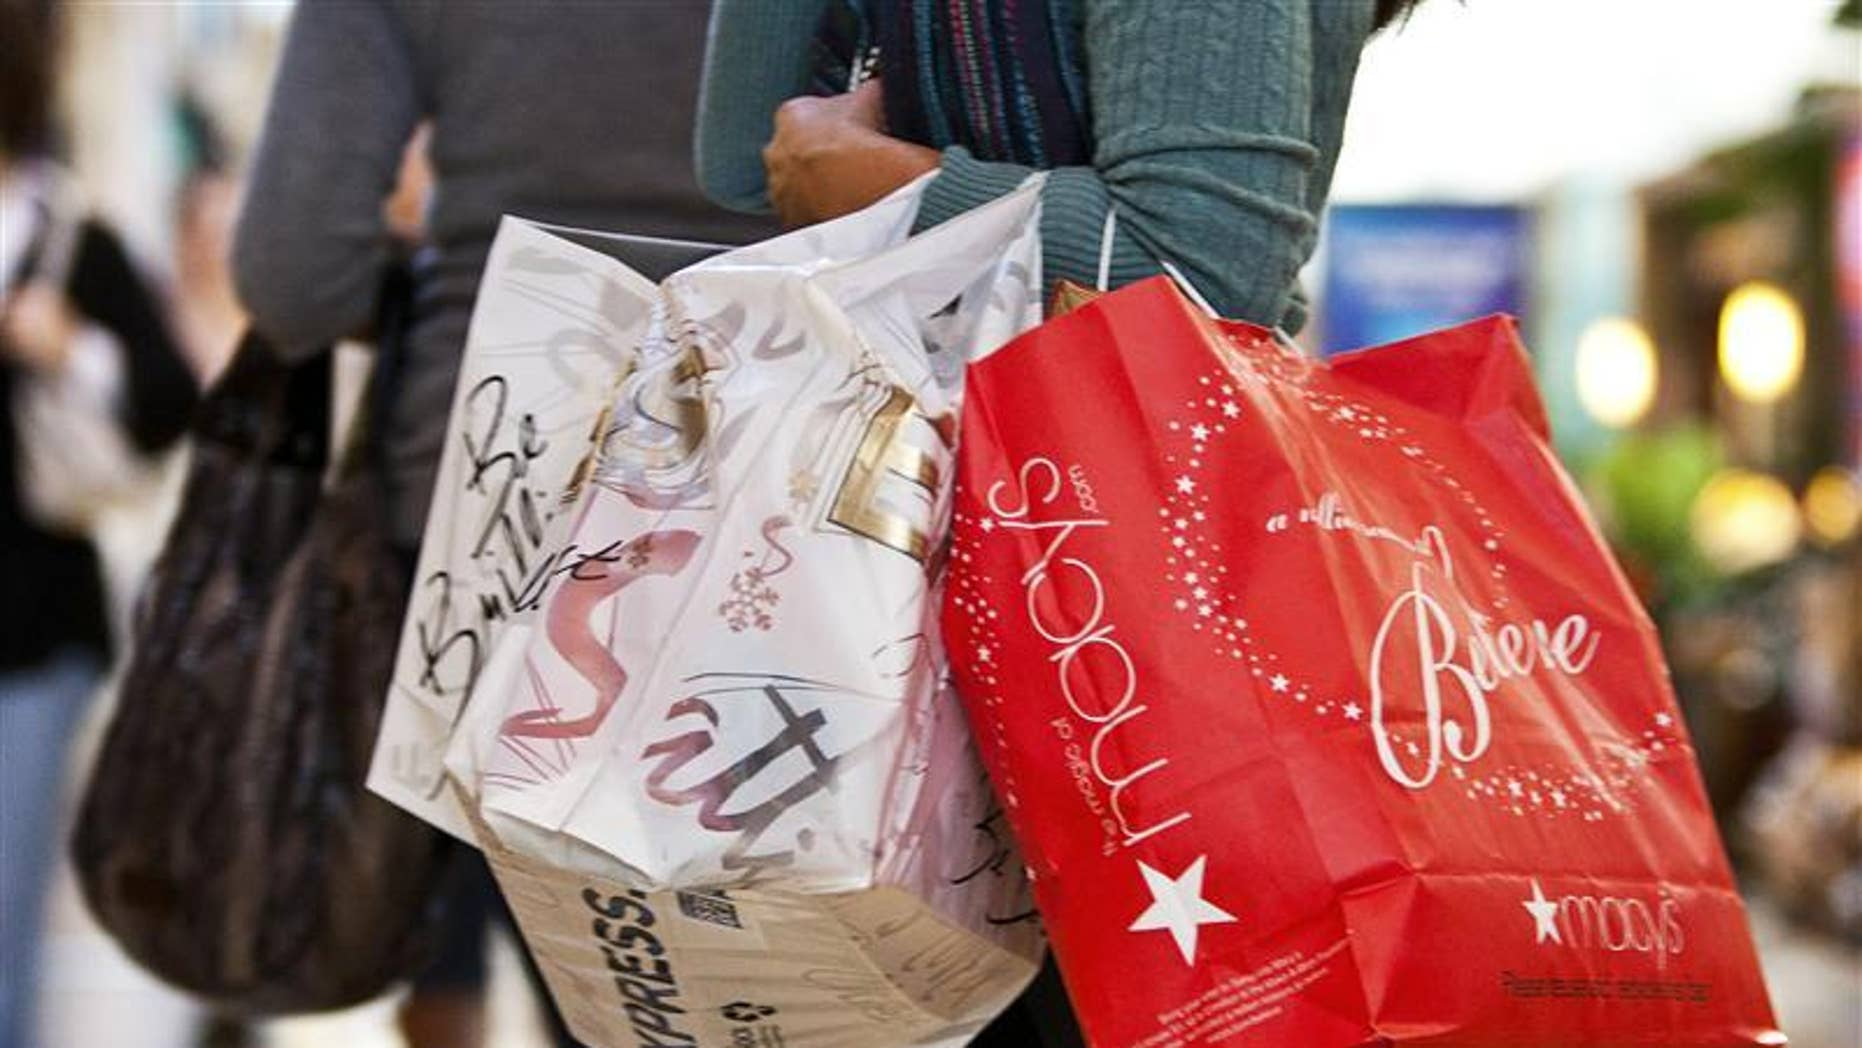 A consumer carries shopping bags in a mall in Charlotte, North Carolina